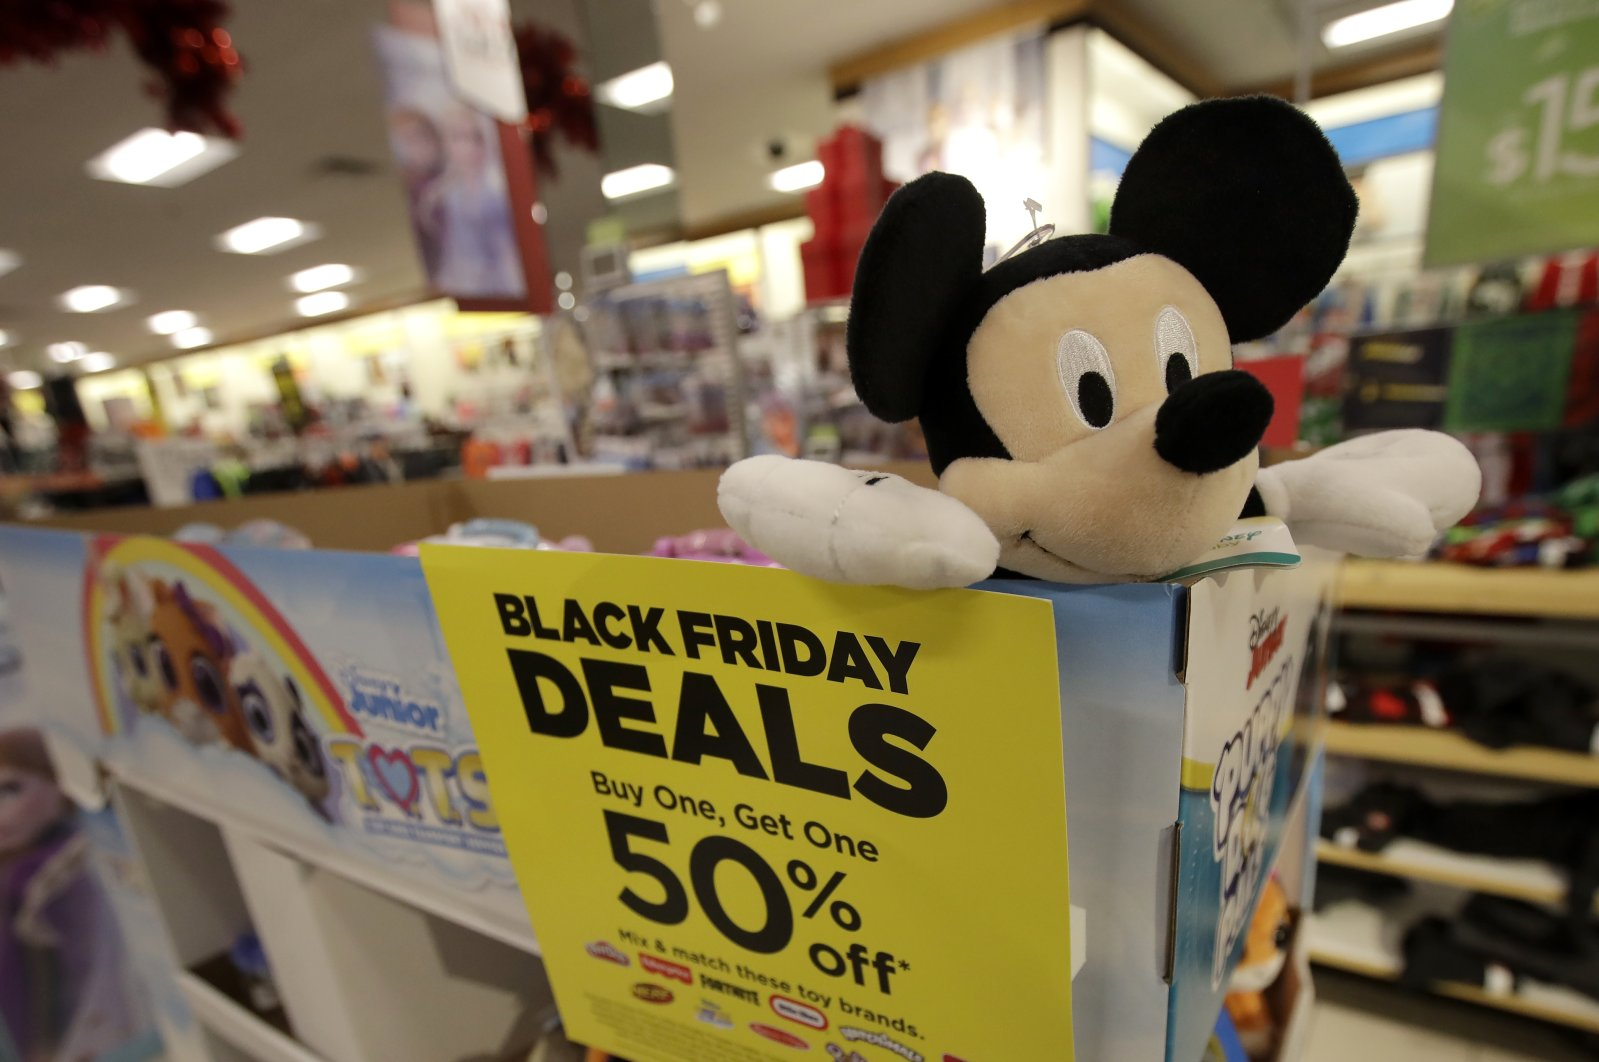 A sale sign is shown next to a Mickey Mouse doll at a Kohl's store in Colma, Calif., Friday, Nov. 29, 2019. (AP Photo)